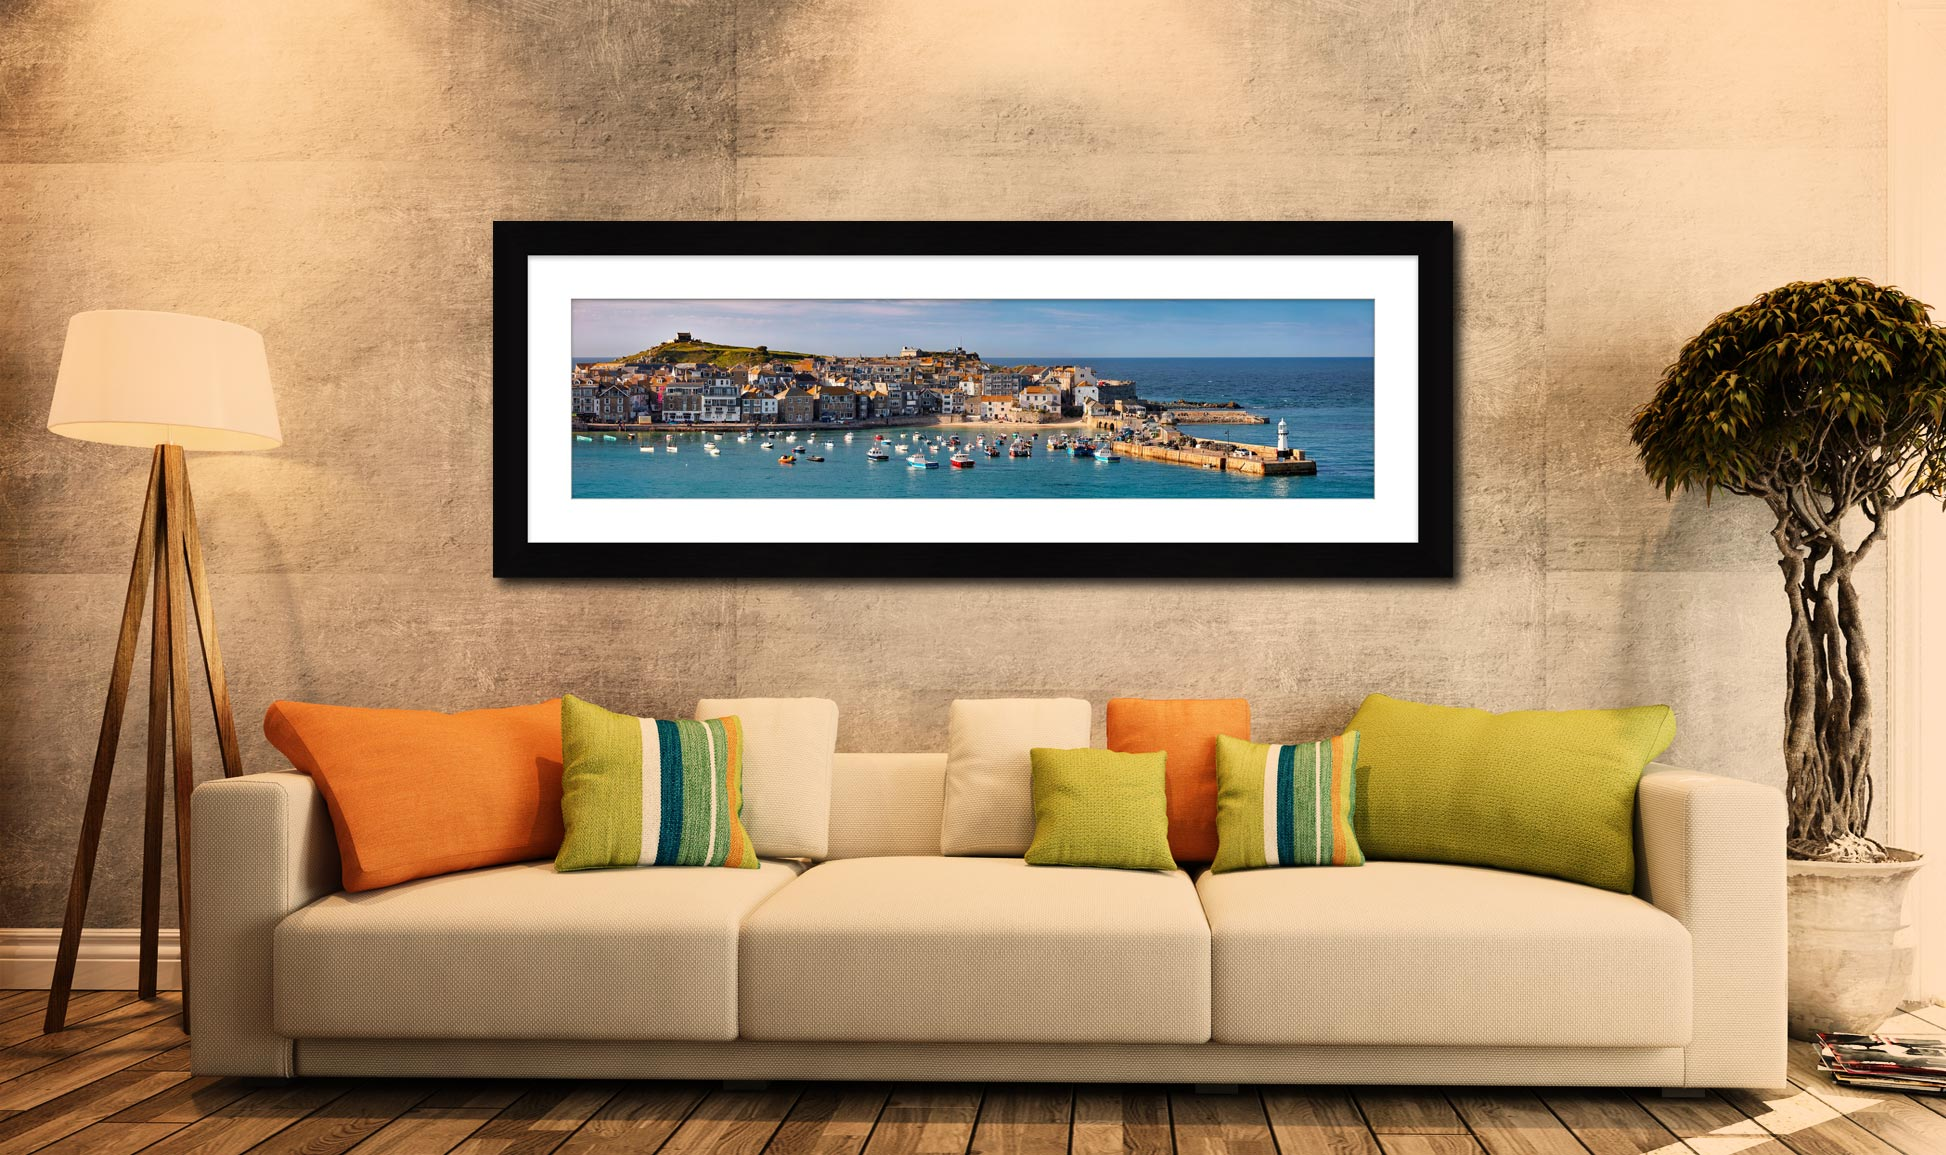 St Ives Harbour in Afternoon Sunshine - Framed Print with Mount on Wall